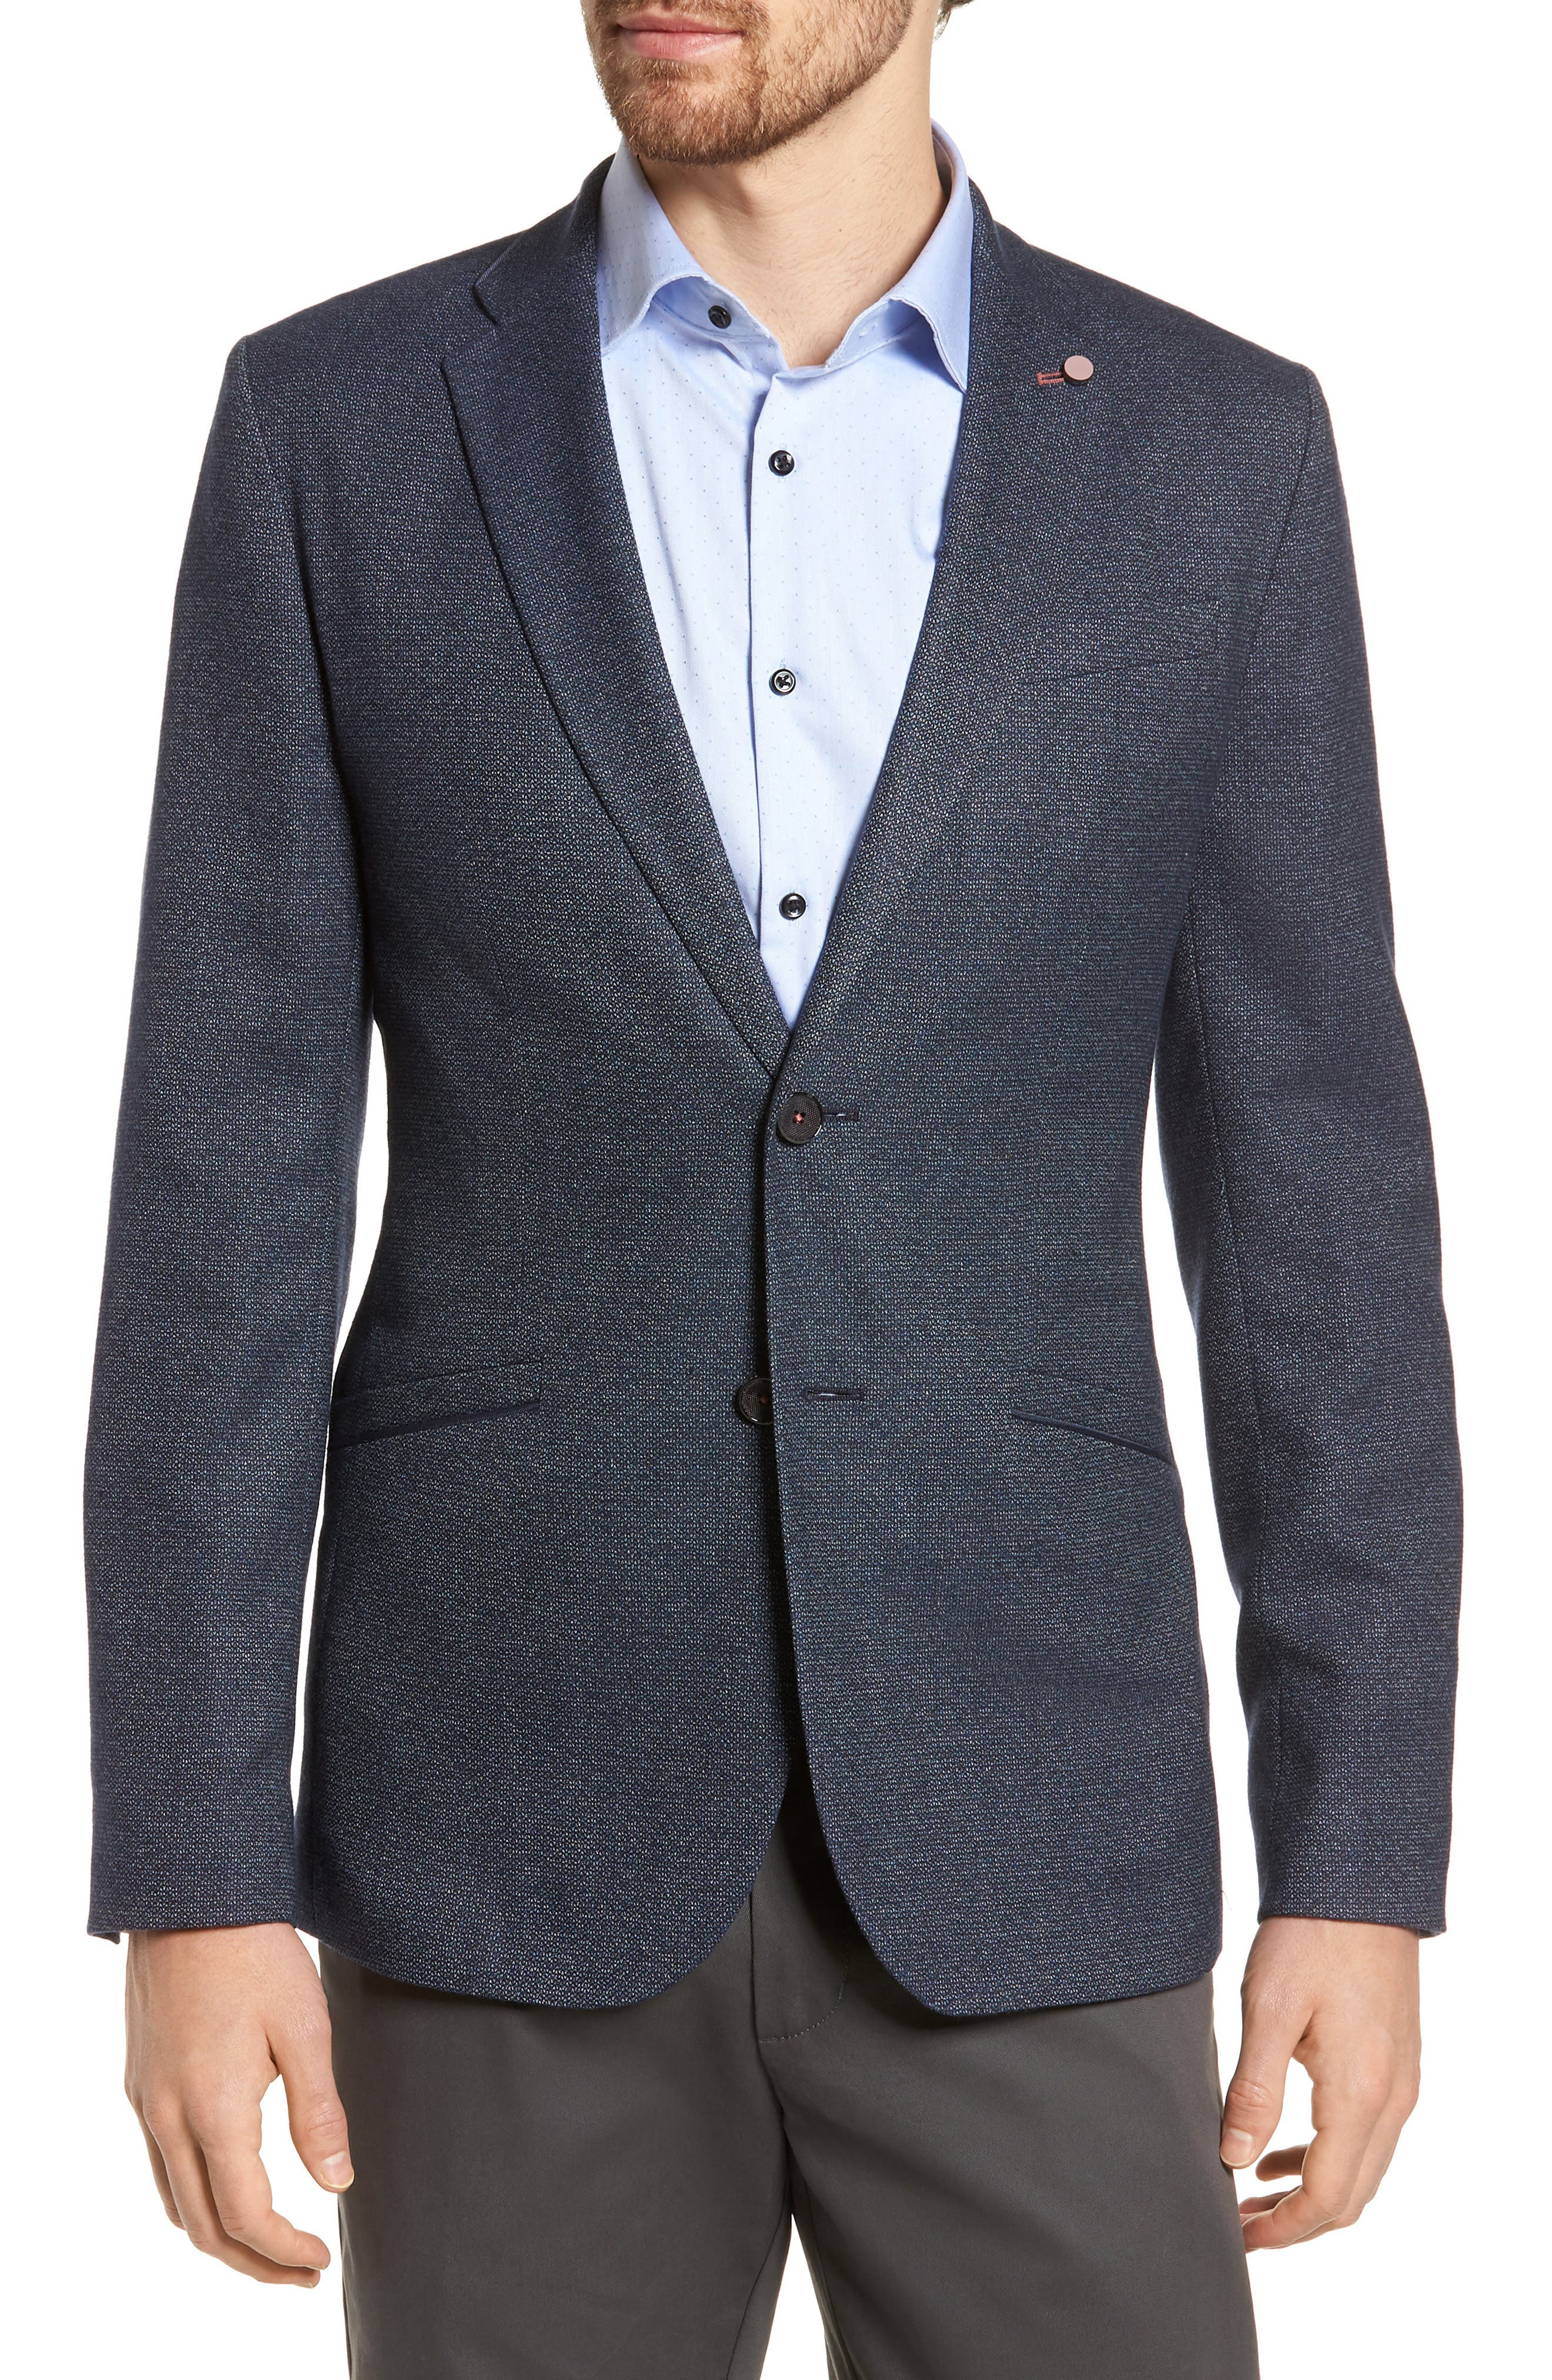 Burkett Trim Fit Blazer,                             Main thumbnail 1, color,